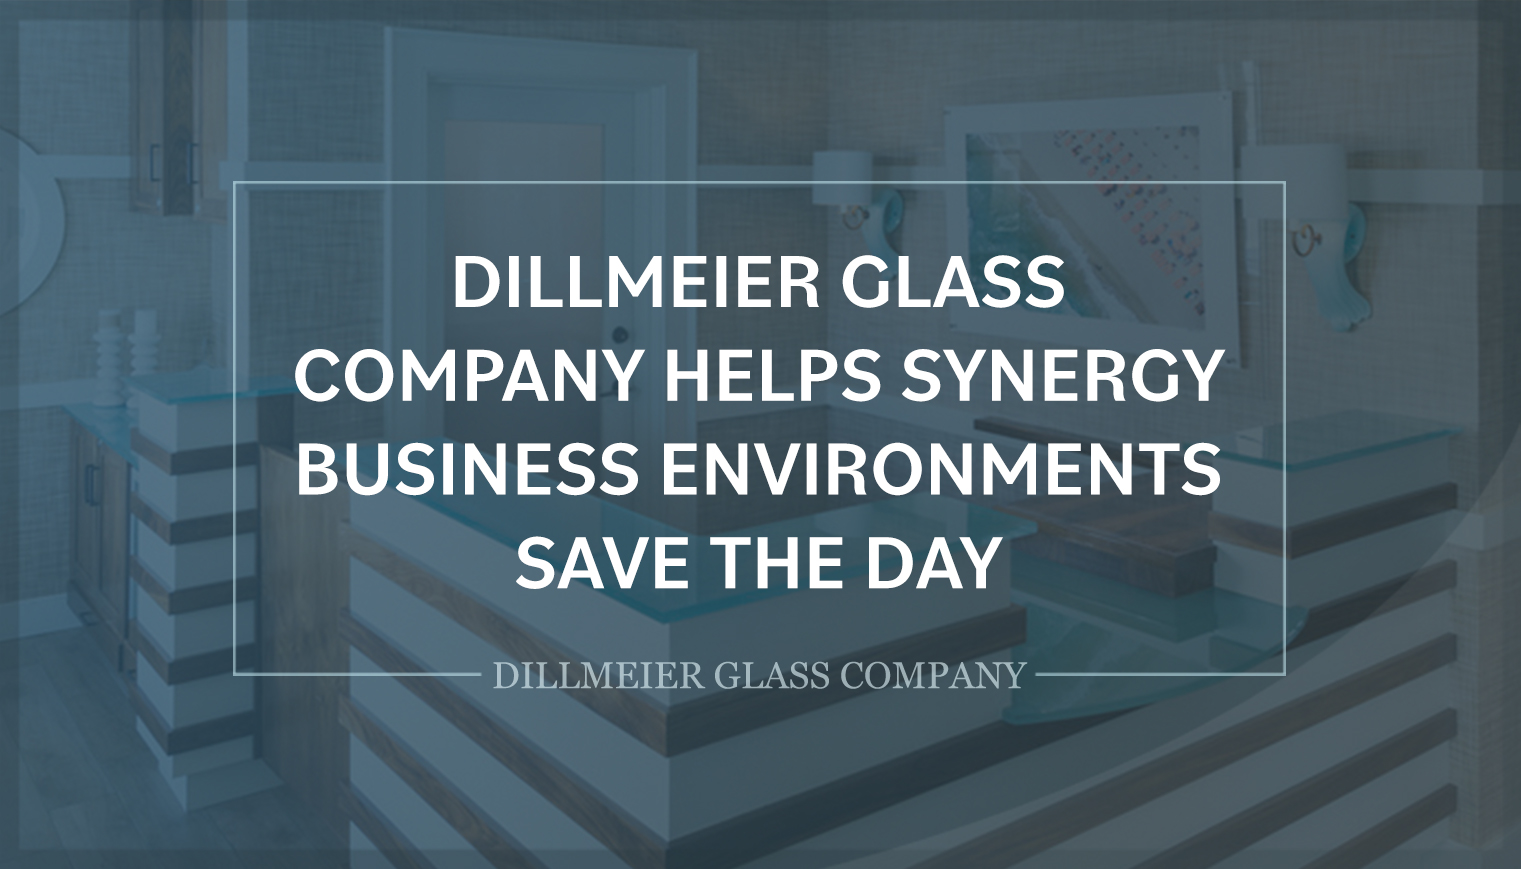 Dillmeier Glass Company Helps Synergy Business Environments Save the Day